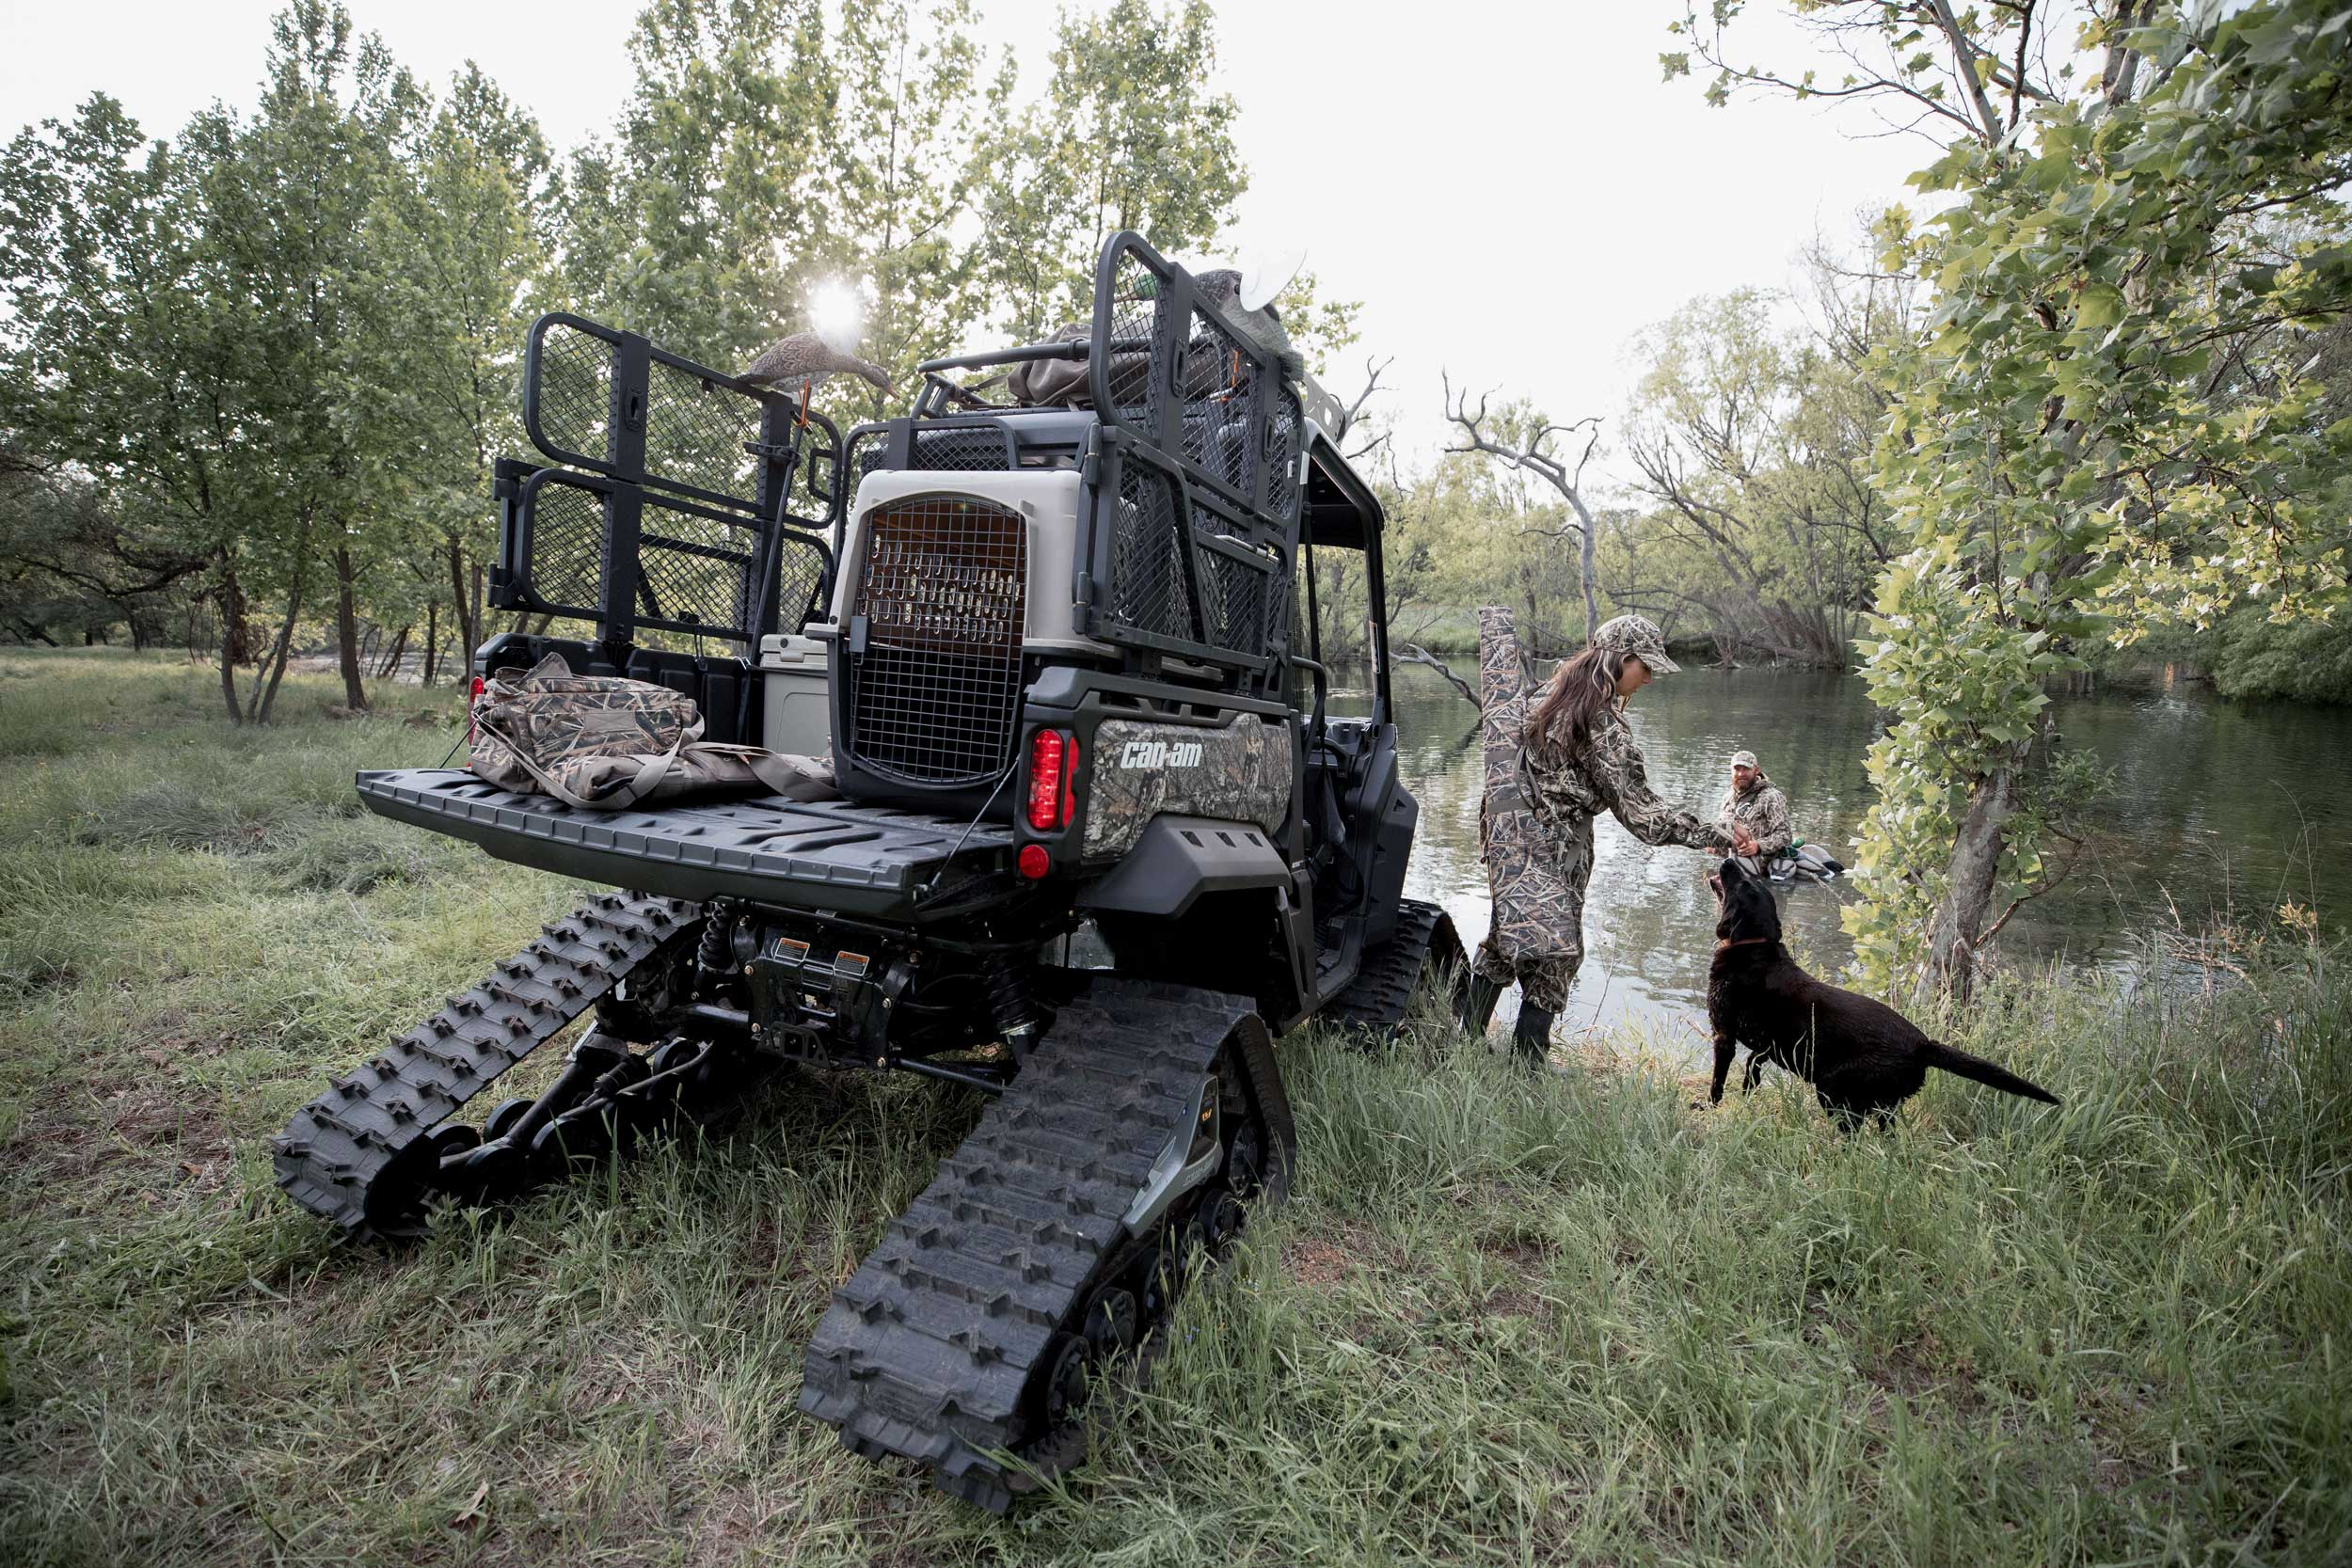 Rear view of a custom hunting Can-Am Defender and a couple and their dog